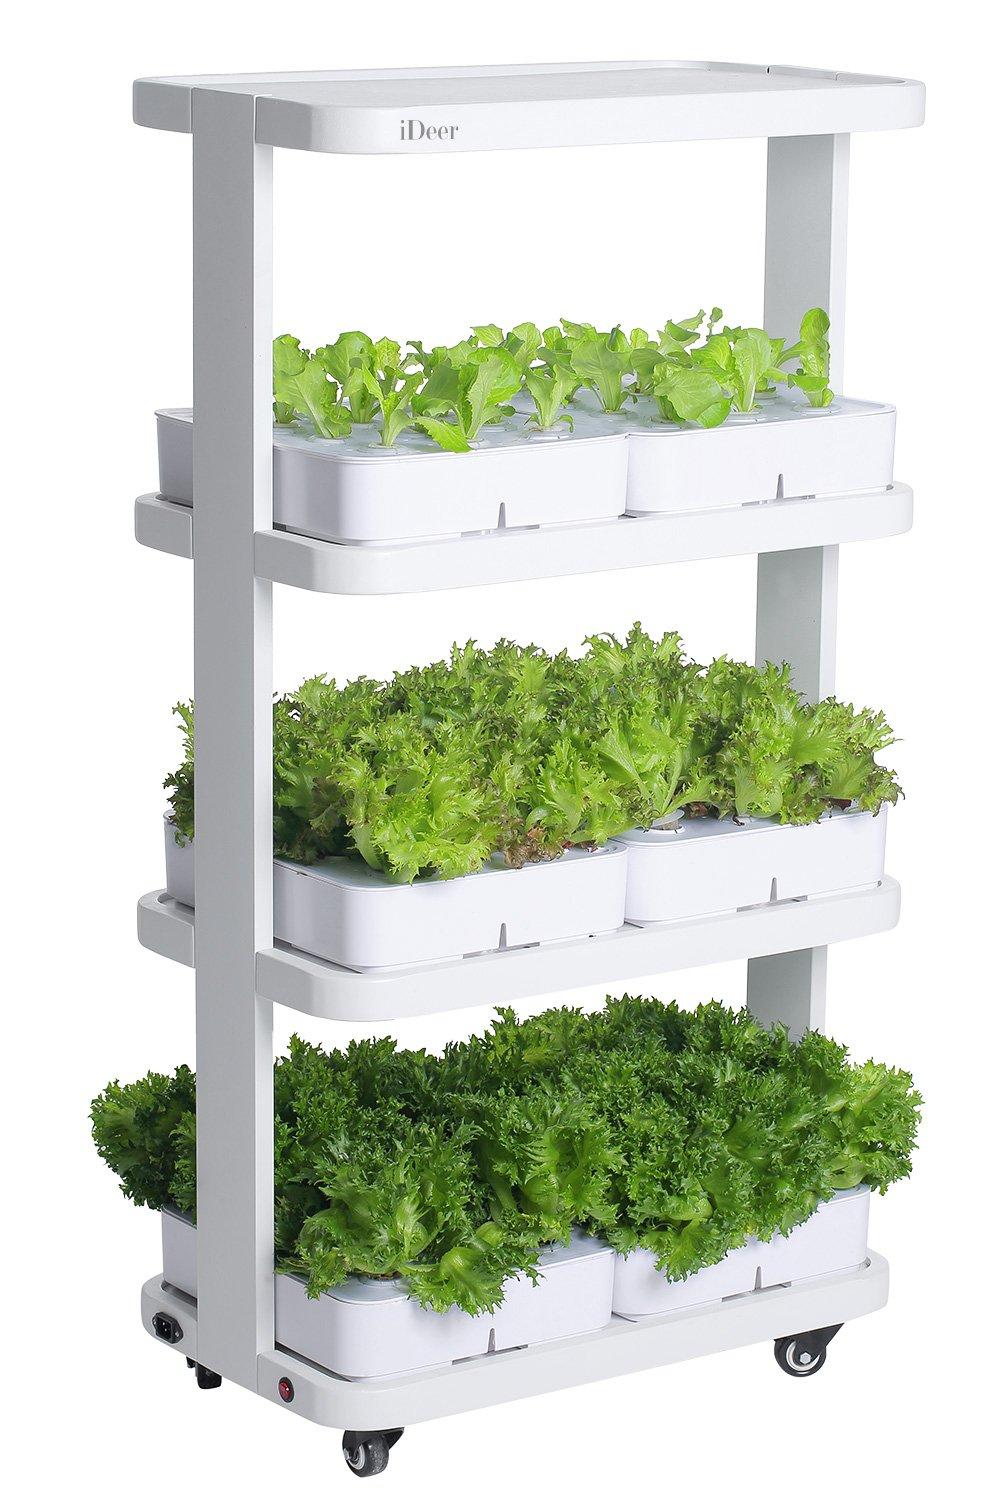 iDeer Life Mine Kitchen, Smart Indoor Gardening System with LED Plant Grow Light, Indoor Herb Garden, Soil-Free Plantation, Hydroponics Watering Growing System, Multi-Layer Planting with Moving Wheel, Indoor Gardening Kit with Seedling Foam, Not Contain Seeds -72 Plants (IDE880296 White) B07C2TV6F4